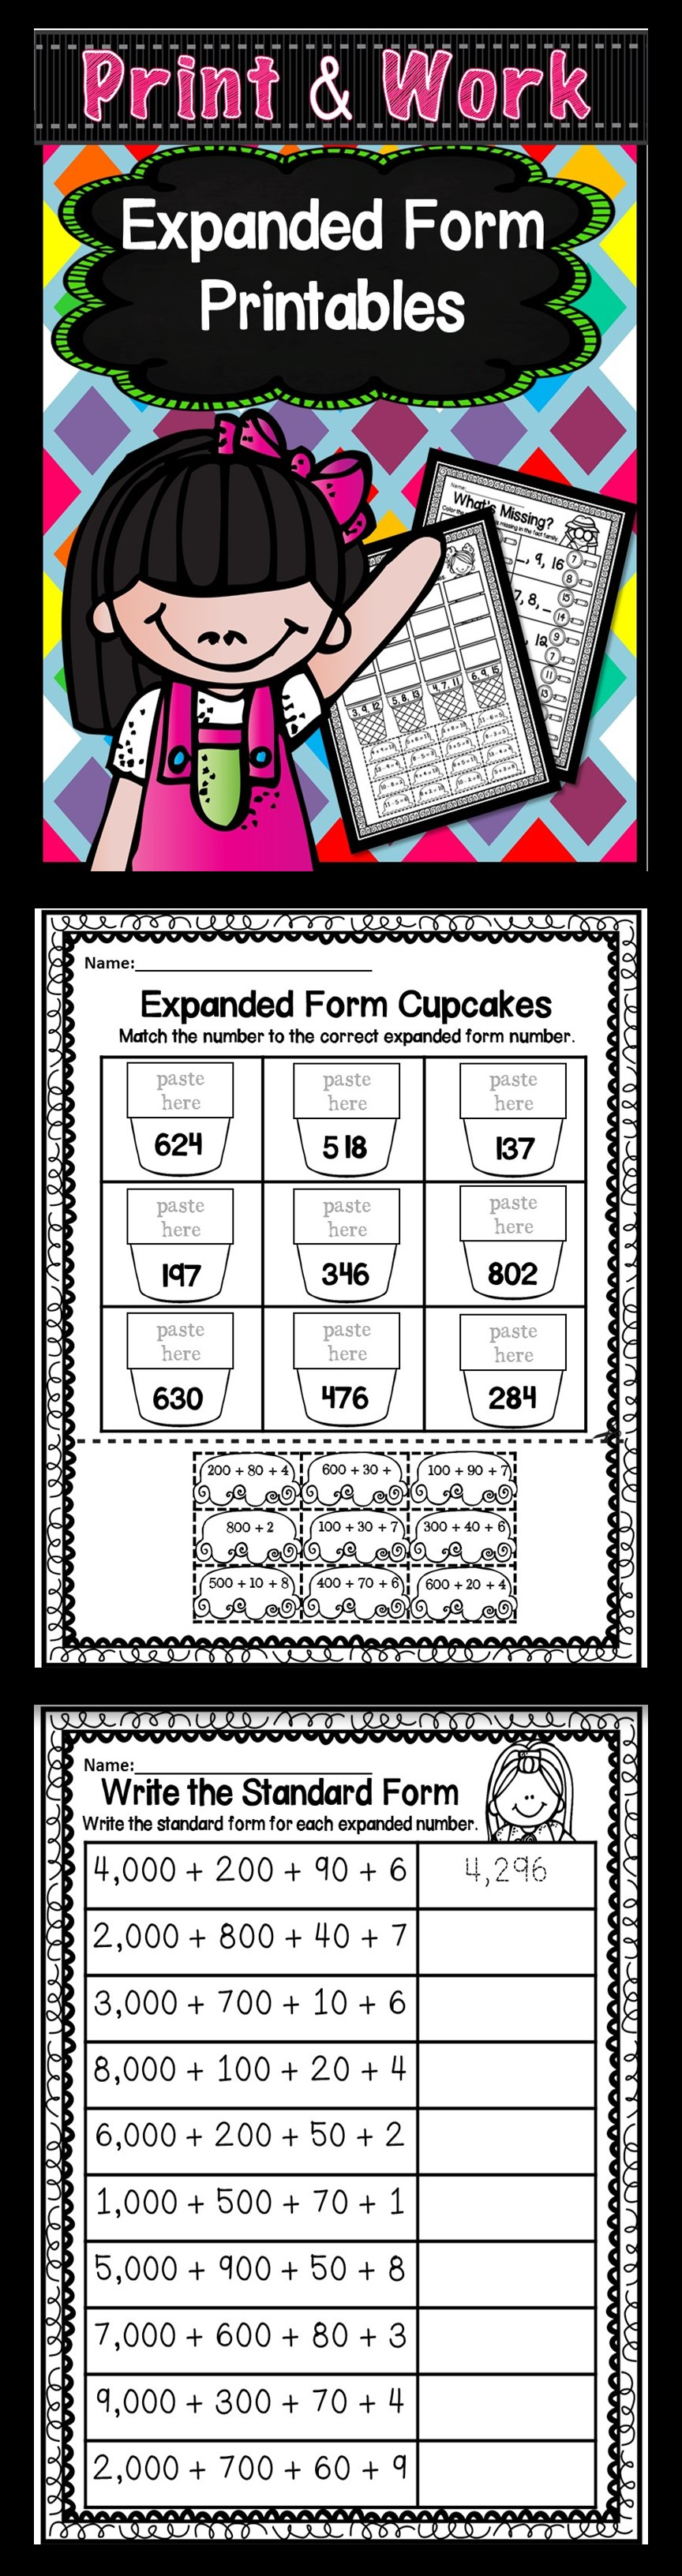 Expanded Form | Pinterest